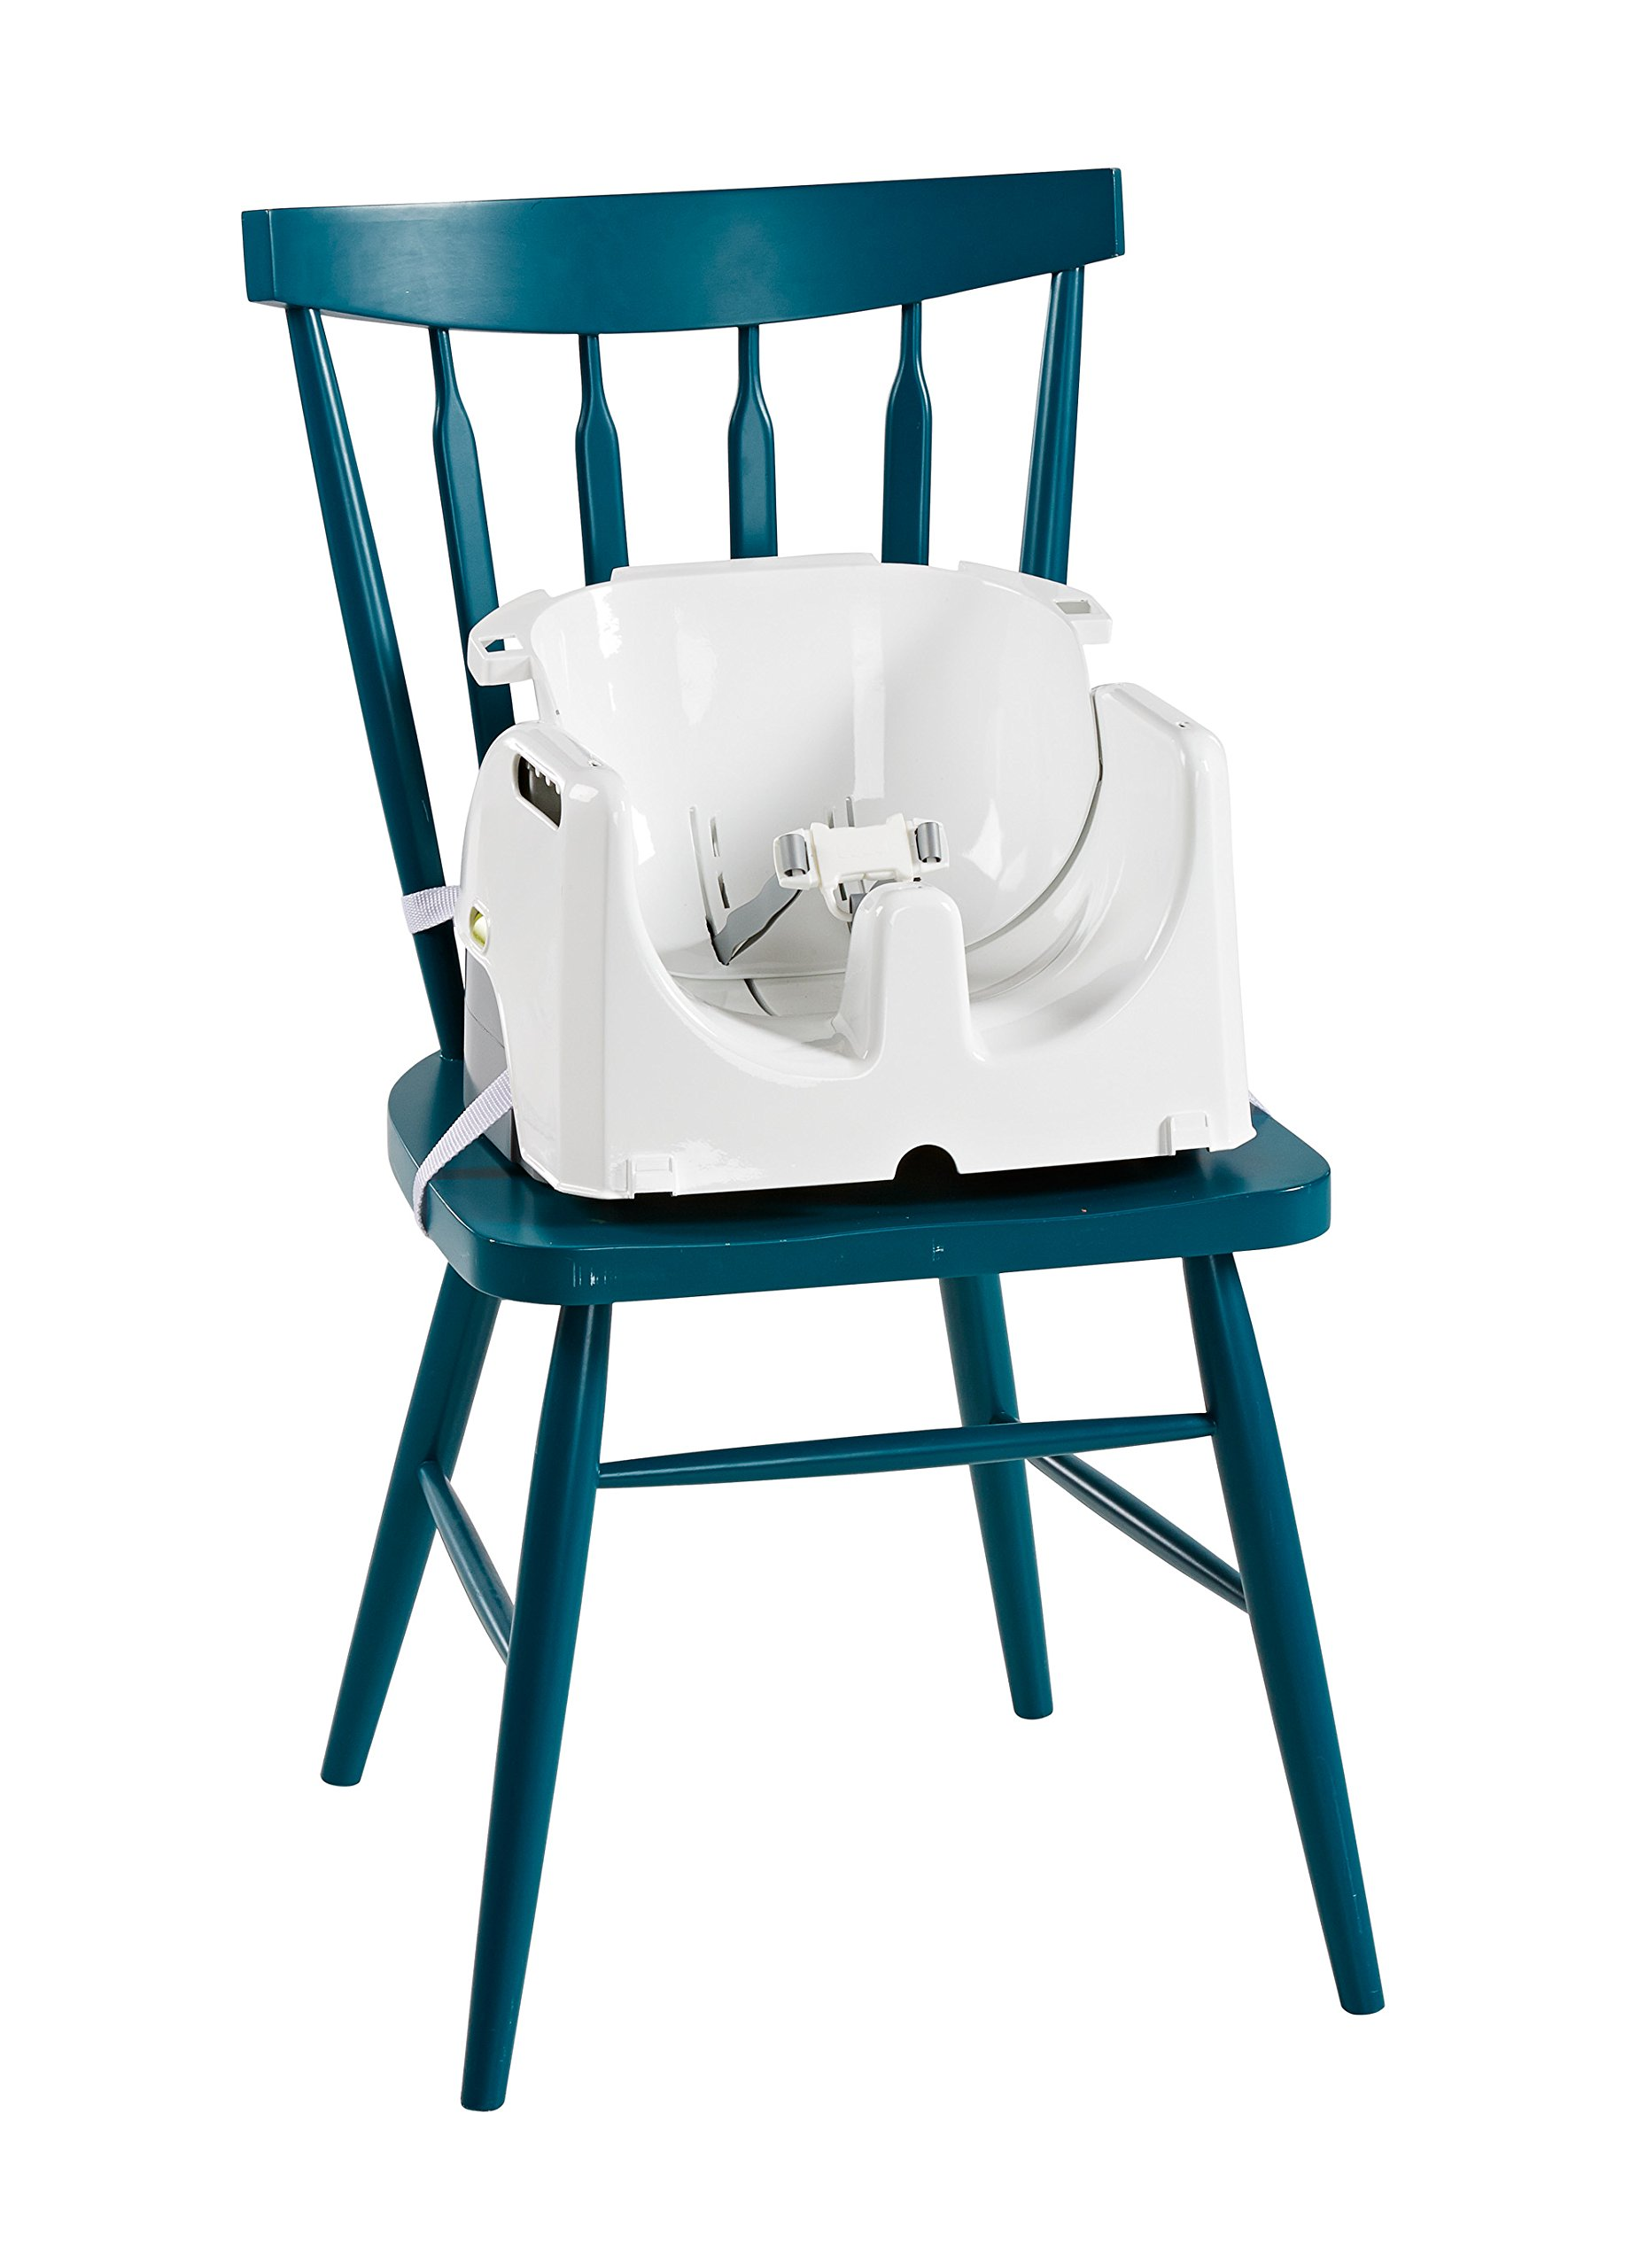 Fisher-Price 4-in-1 Total Clean High Chair, Green/Gray by Fisher-Price (Image #7)